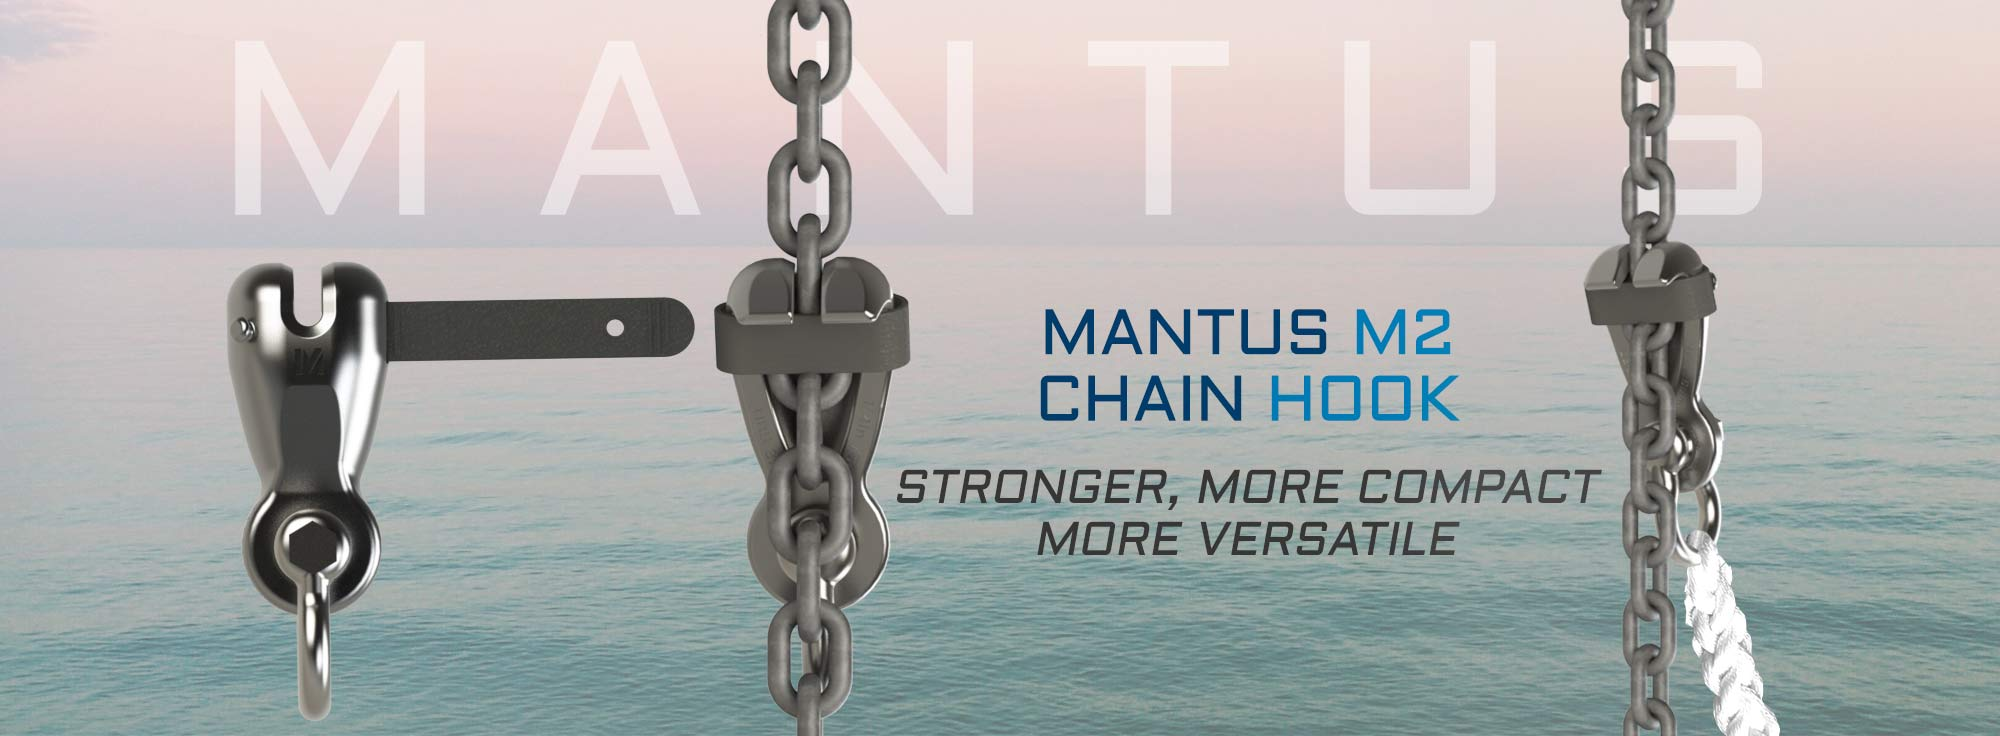 Mantus Marine M2 Chain Hook